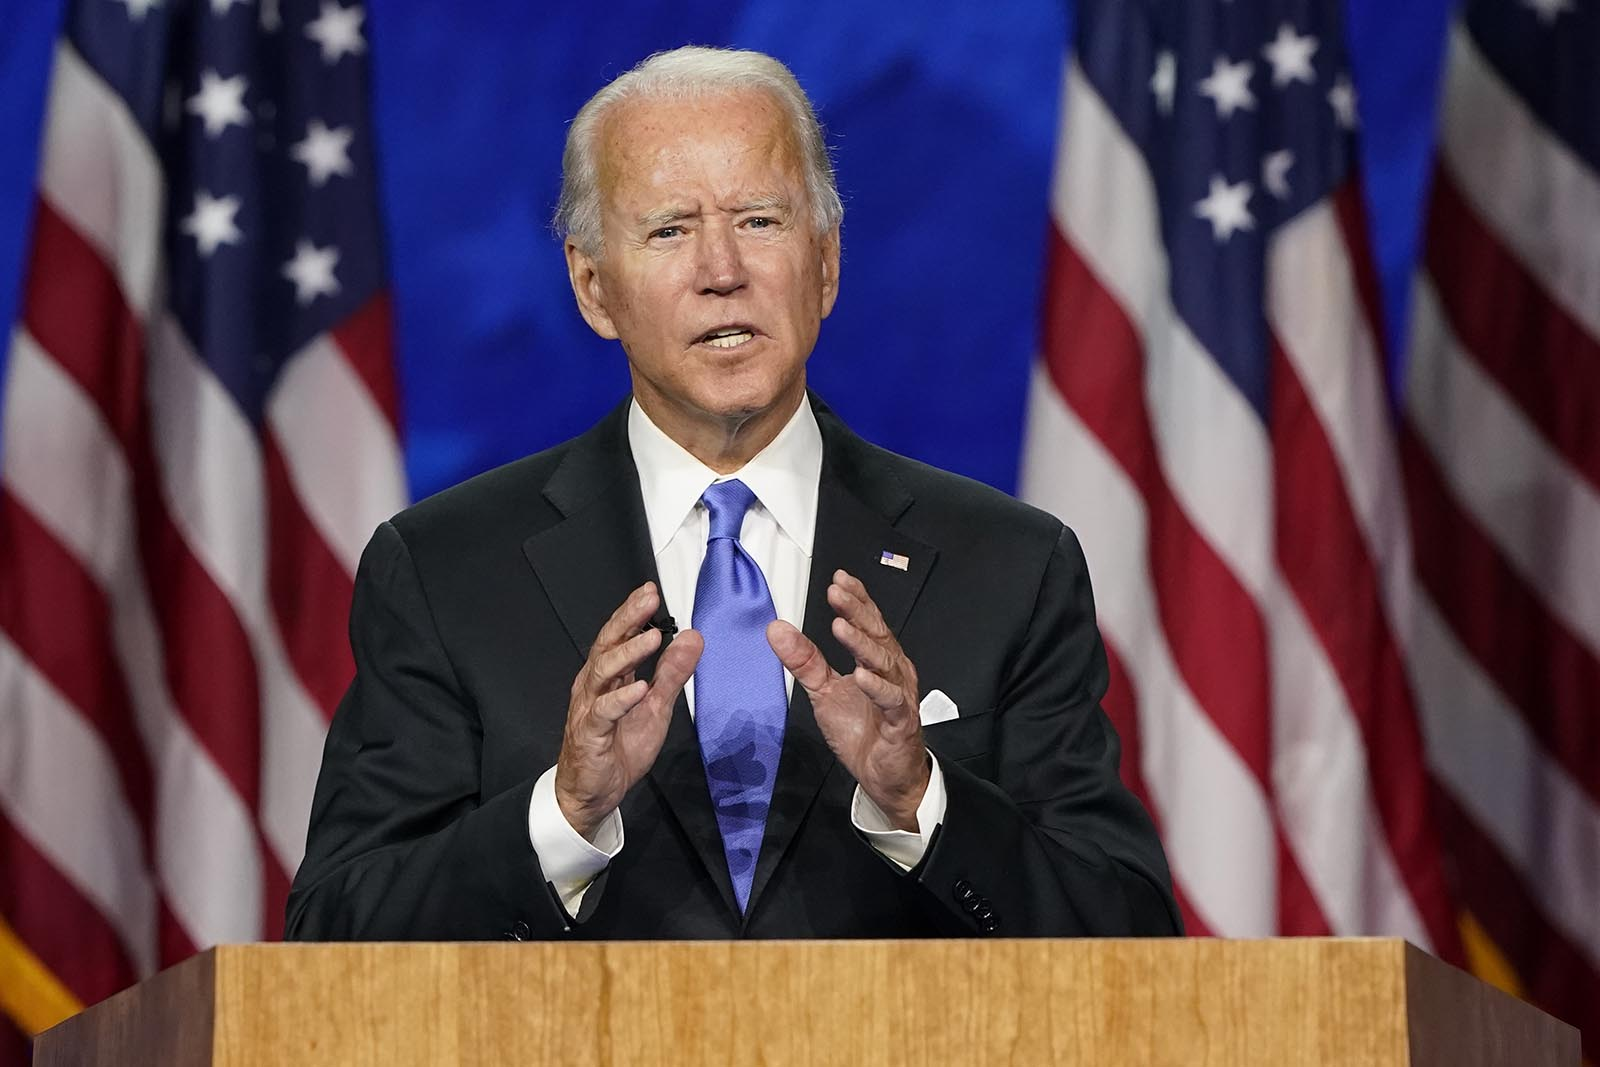 Democratic presidential candidate former Vice President Joe Biden speaks during the fourth day of the Democratic National Convention on Thursday, August 20, in Wilmington, Delaware.